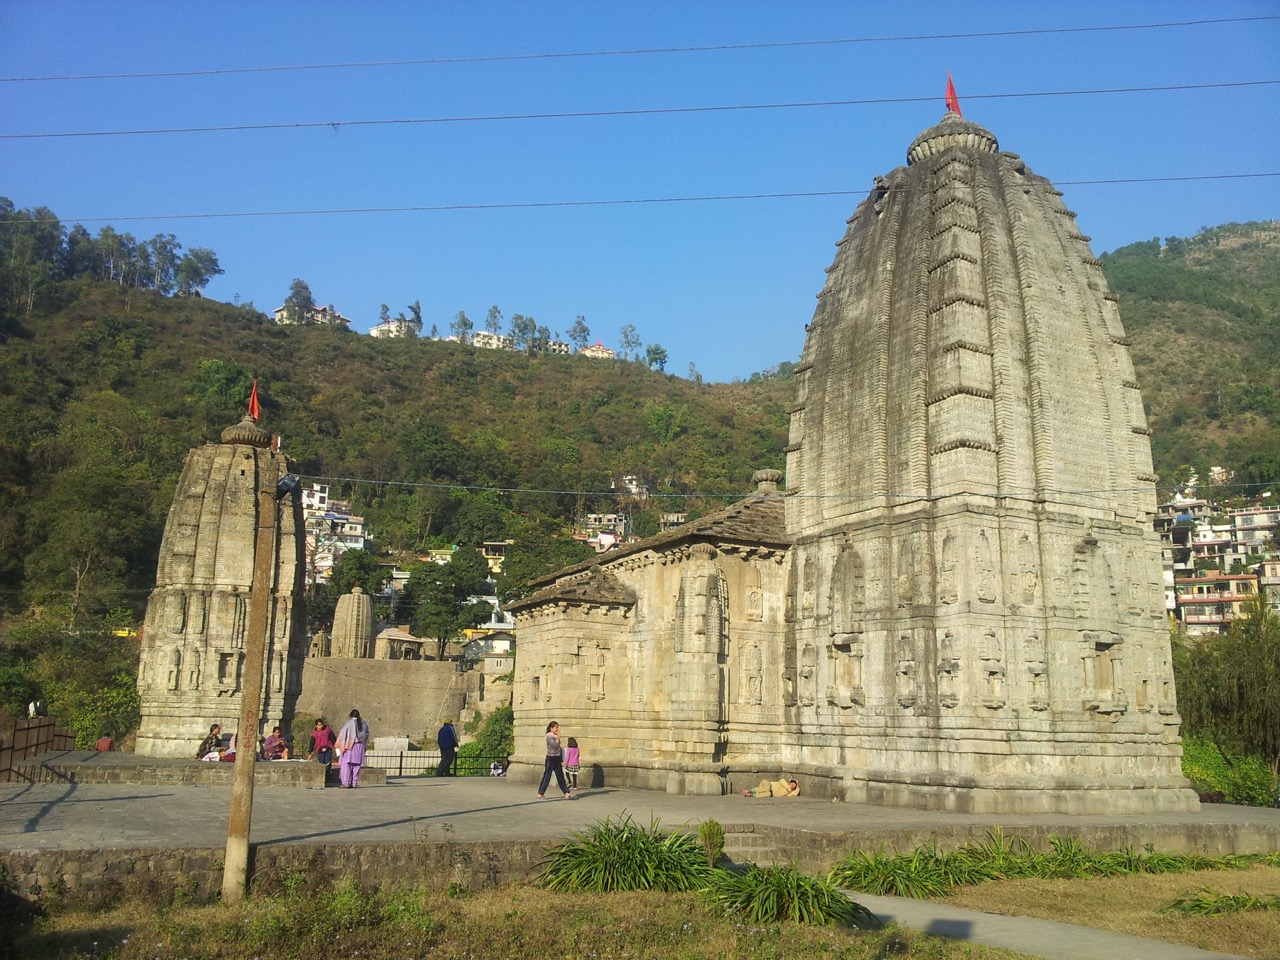 This is a Shiva temple just on the opposite bank of the Triloknath temple. Triloknath temple's spire is visible between the two spires.